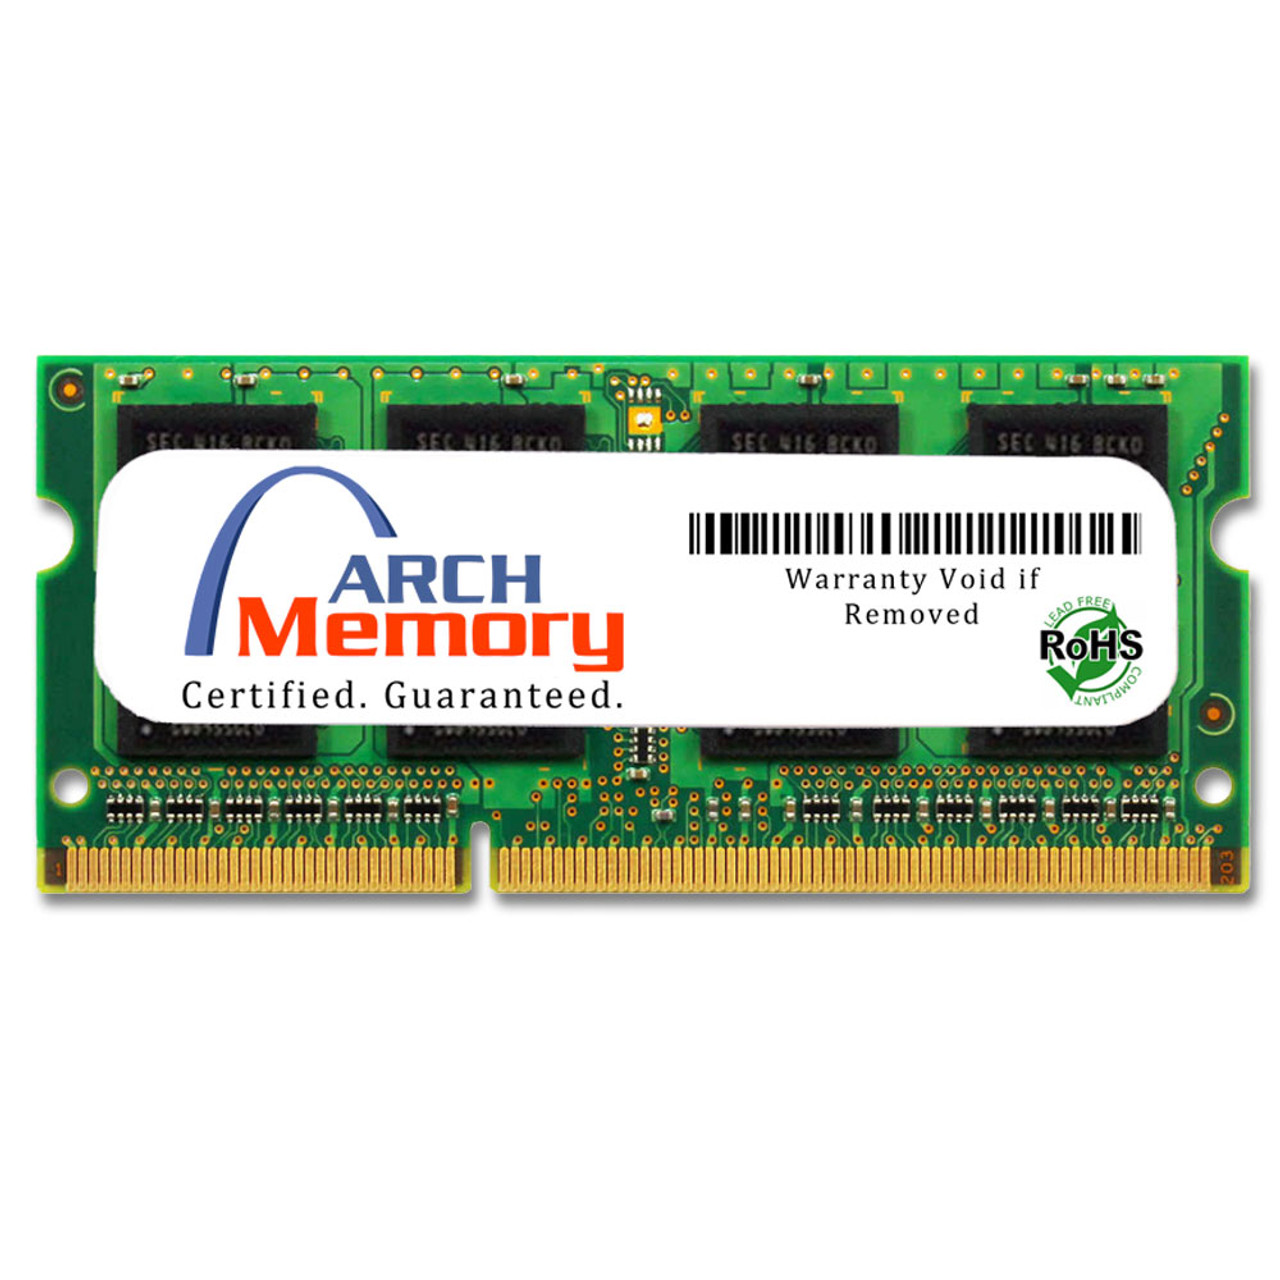 8GB 204-Pin DDR3L-1866 PC3L-14900 1.35v Sodimm RAM